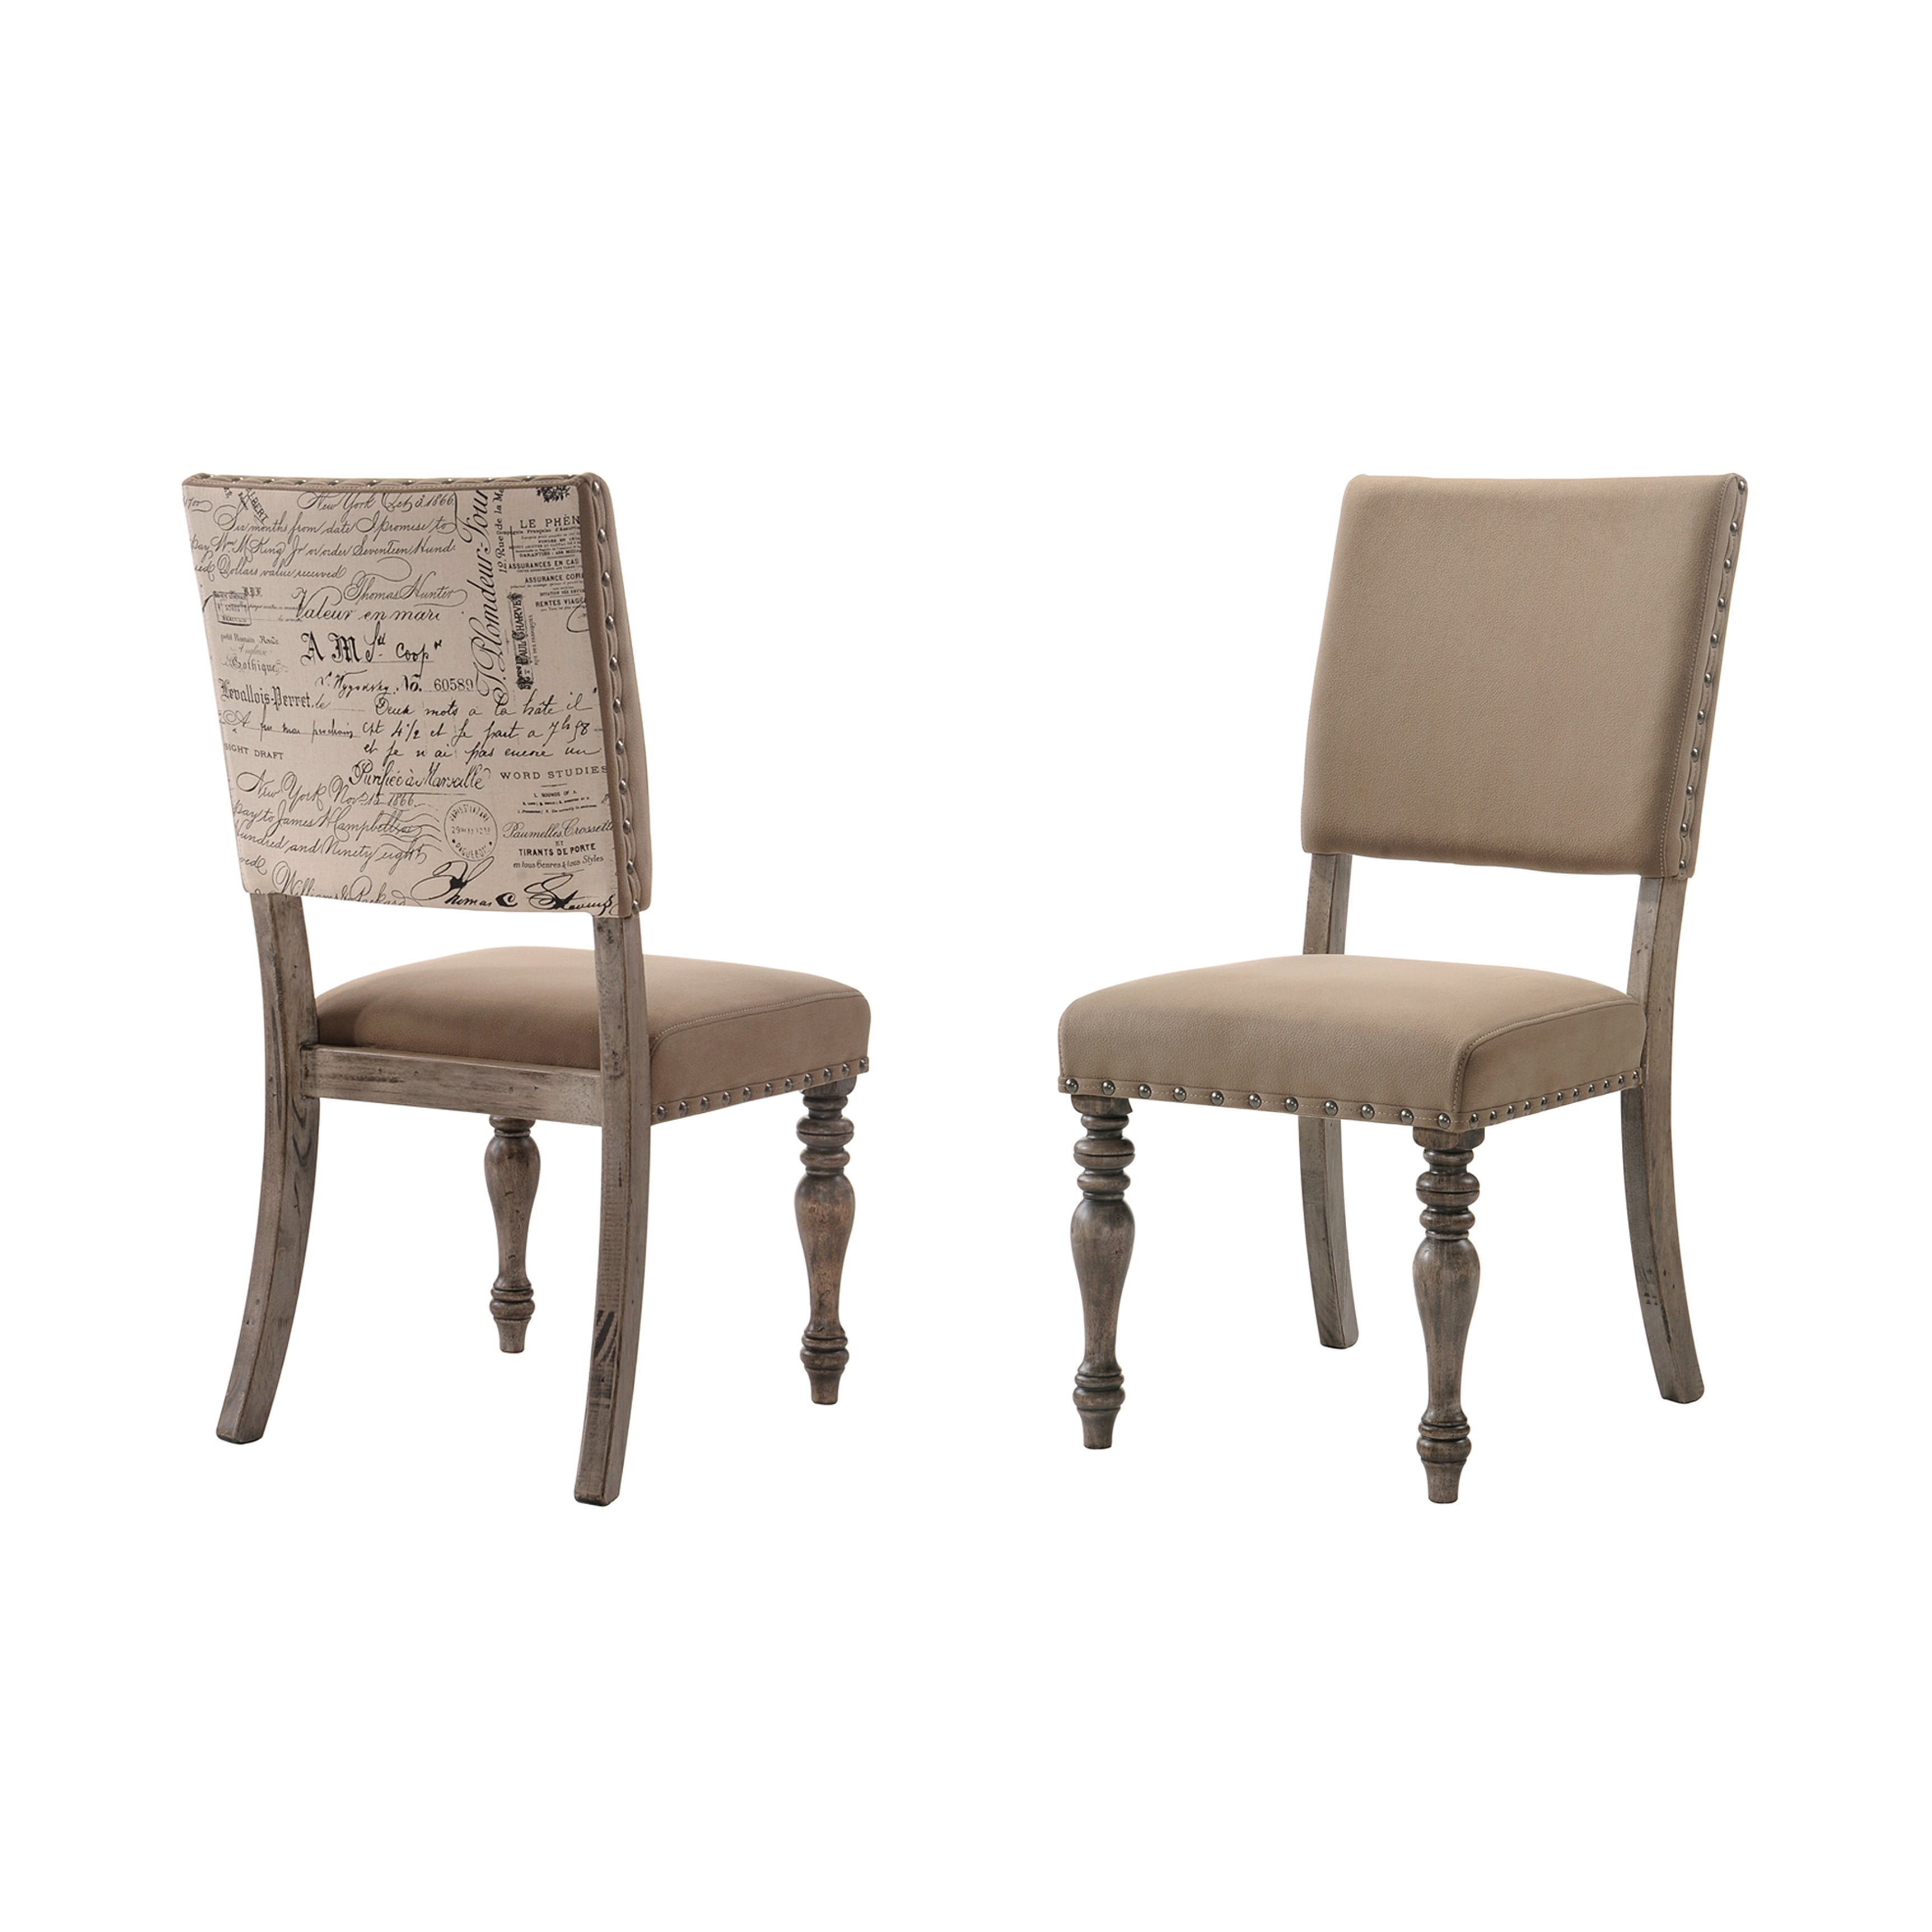 Shop birmingham script printed driftwood finish dining chair with nail head set of 2 free shipping today overstock 16564164